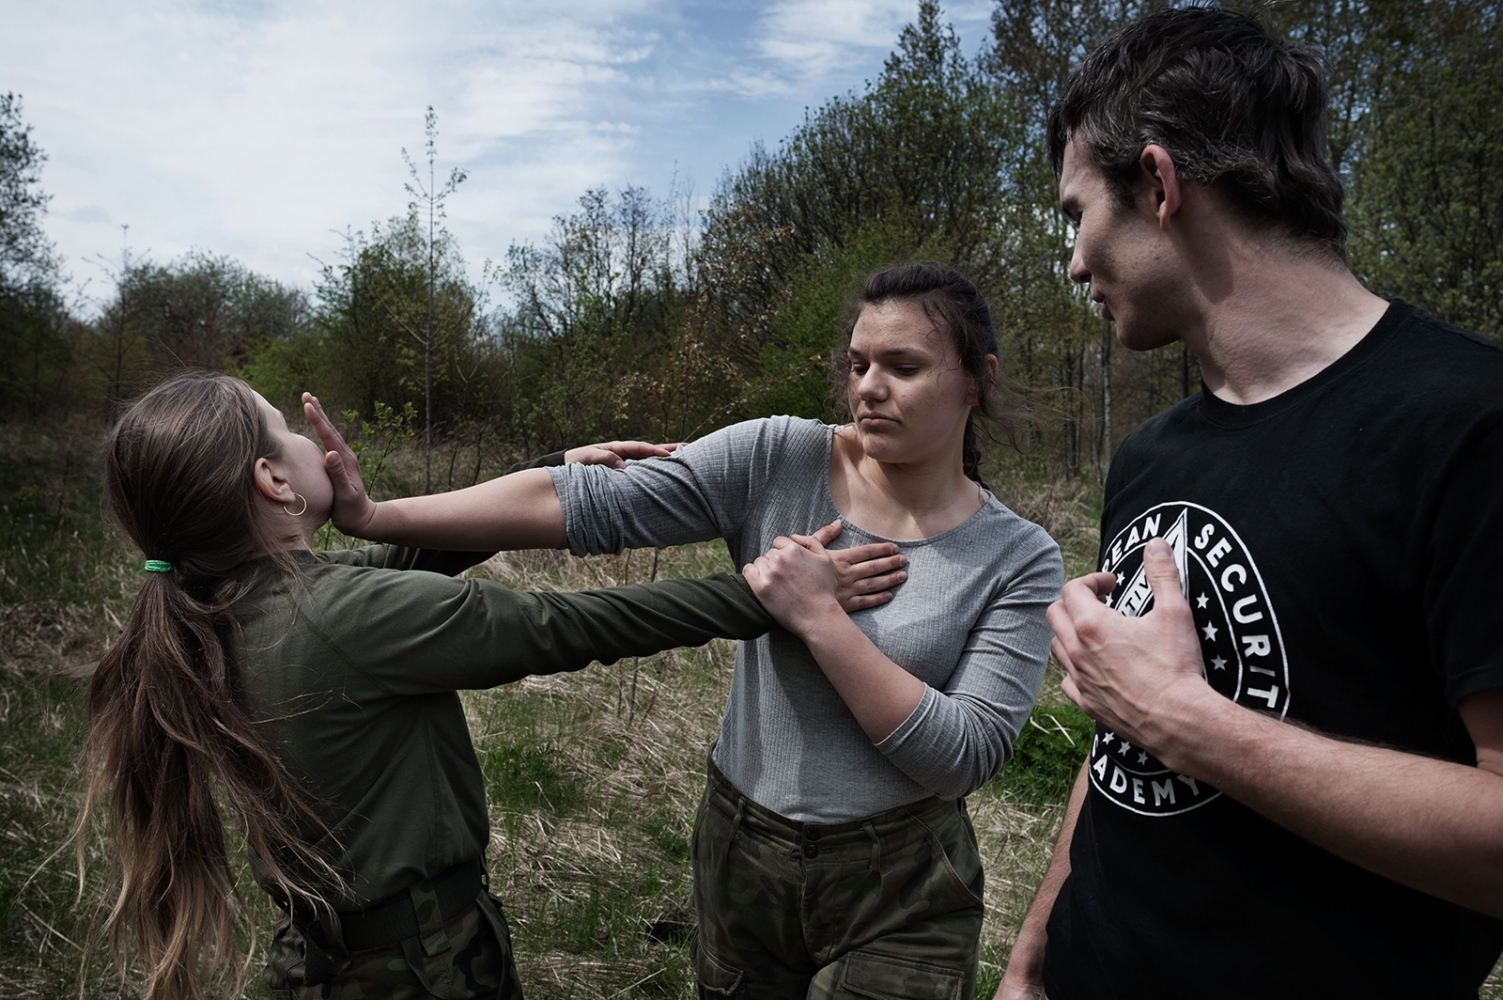 "Students of 16 and 17 years old, learning the Krav Maga movements with K.Z – an inspector from paramilitary organization. In general the paramilitary organizations are composed by soldiers or ex-soldiers, sometimes also by regular citizens who are passionate about military. K.Z. is an ex-soldier currently employed by a security firm similar to ""Blackwater""."